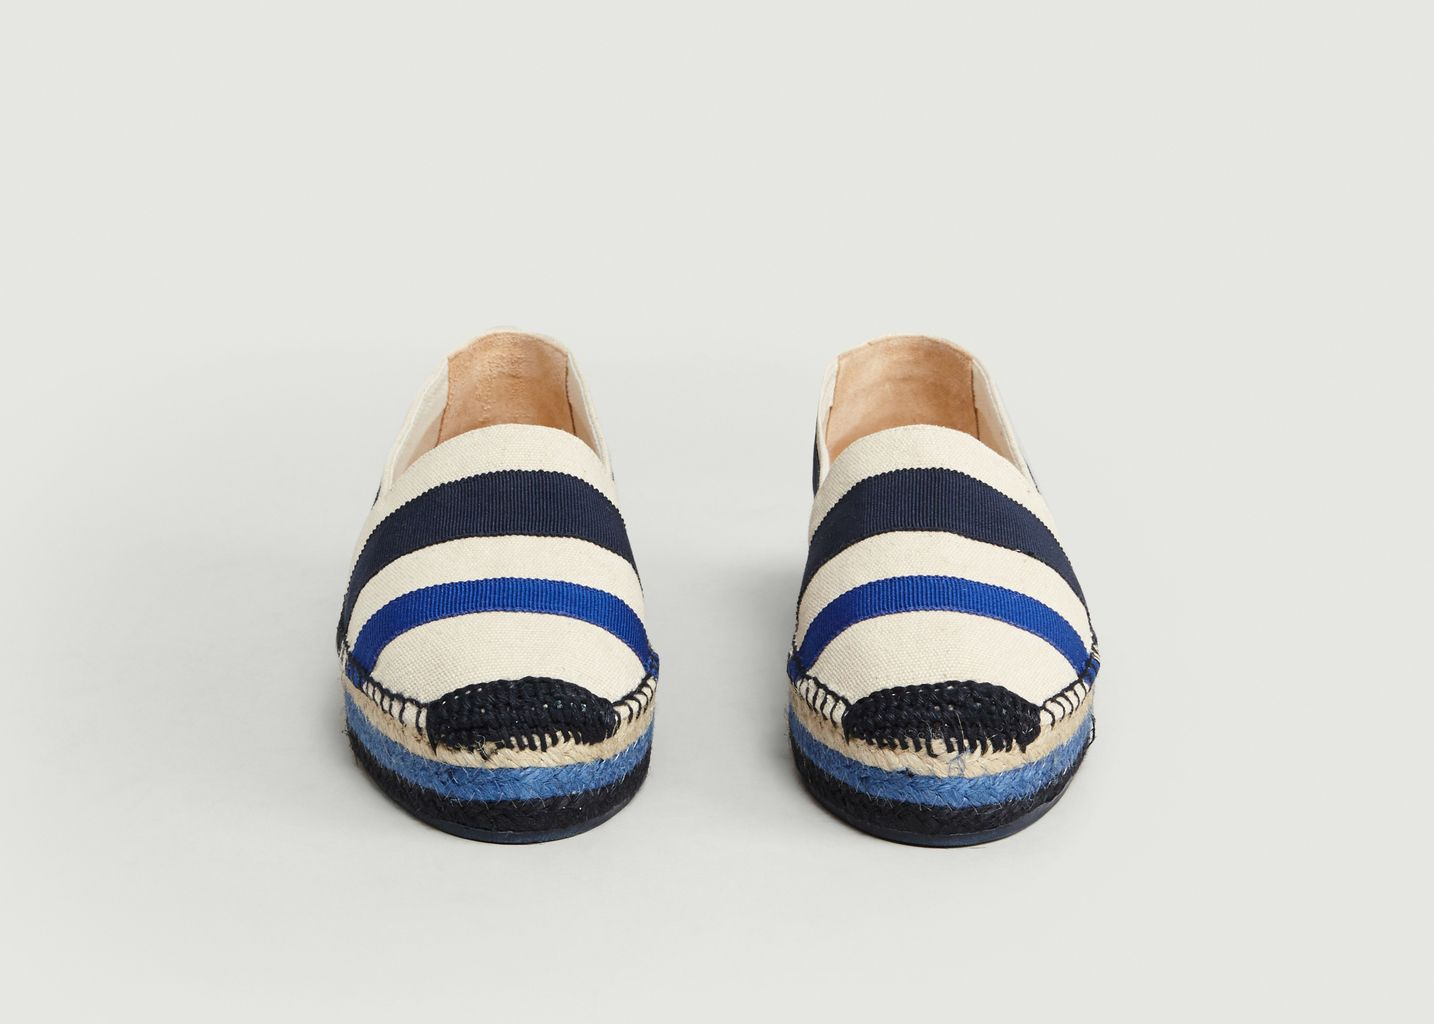 Castañer Kati espadrilles high quality buy online release dates sale online for sale buy authentic online under 70 dollars 1RHKICfJ4h